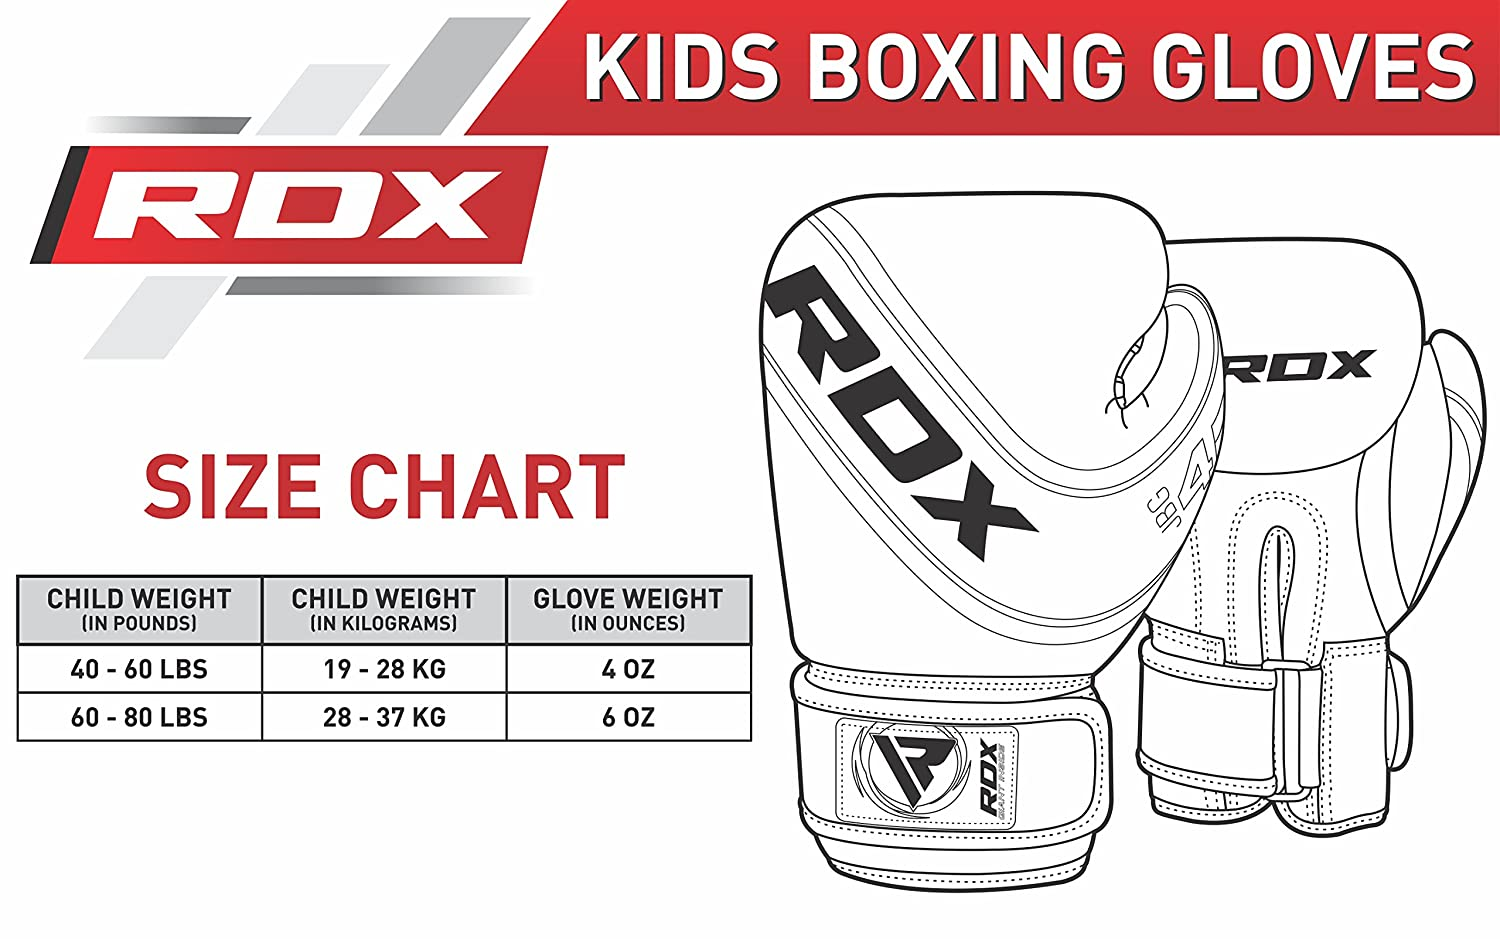 Amazon Rdx Kids Boxing Gloves Maya Hide Leather 4oz 6oz Junior